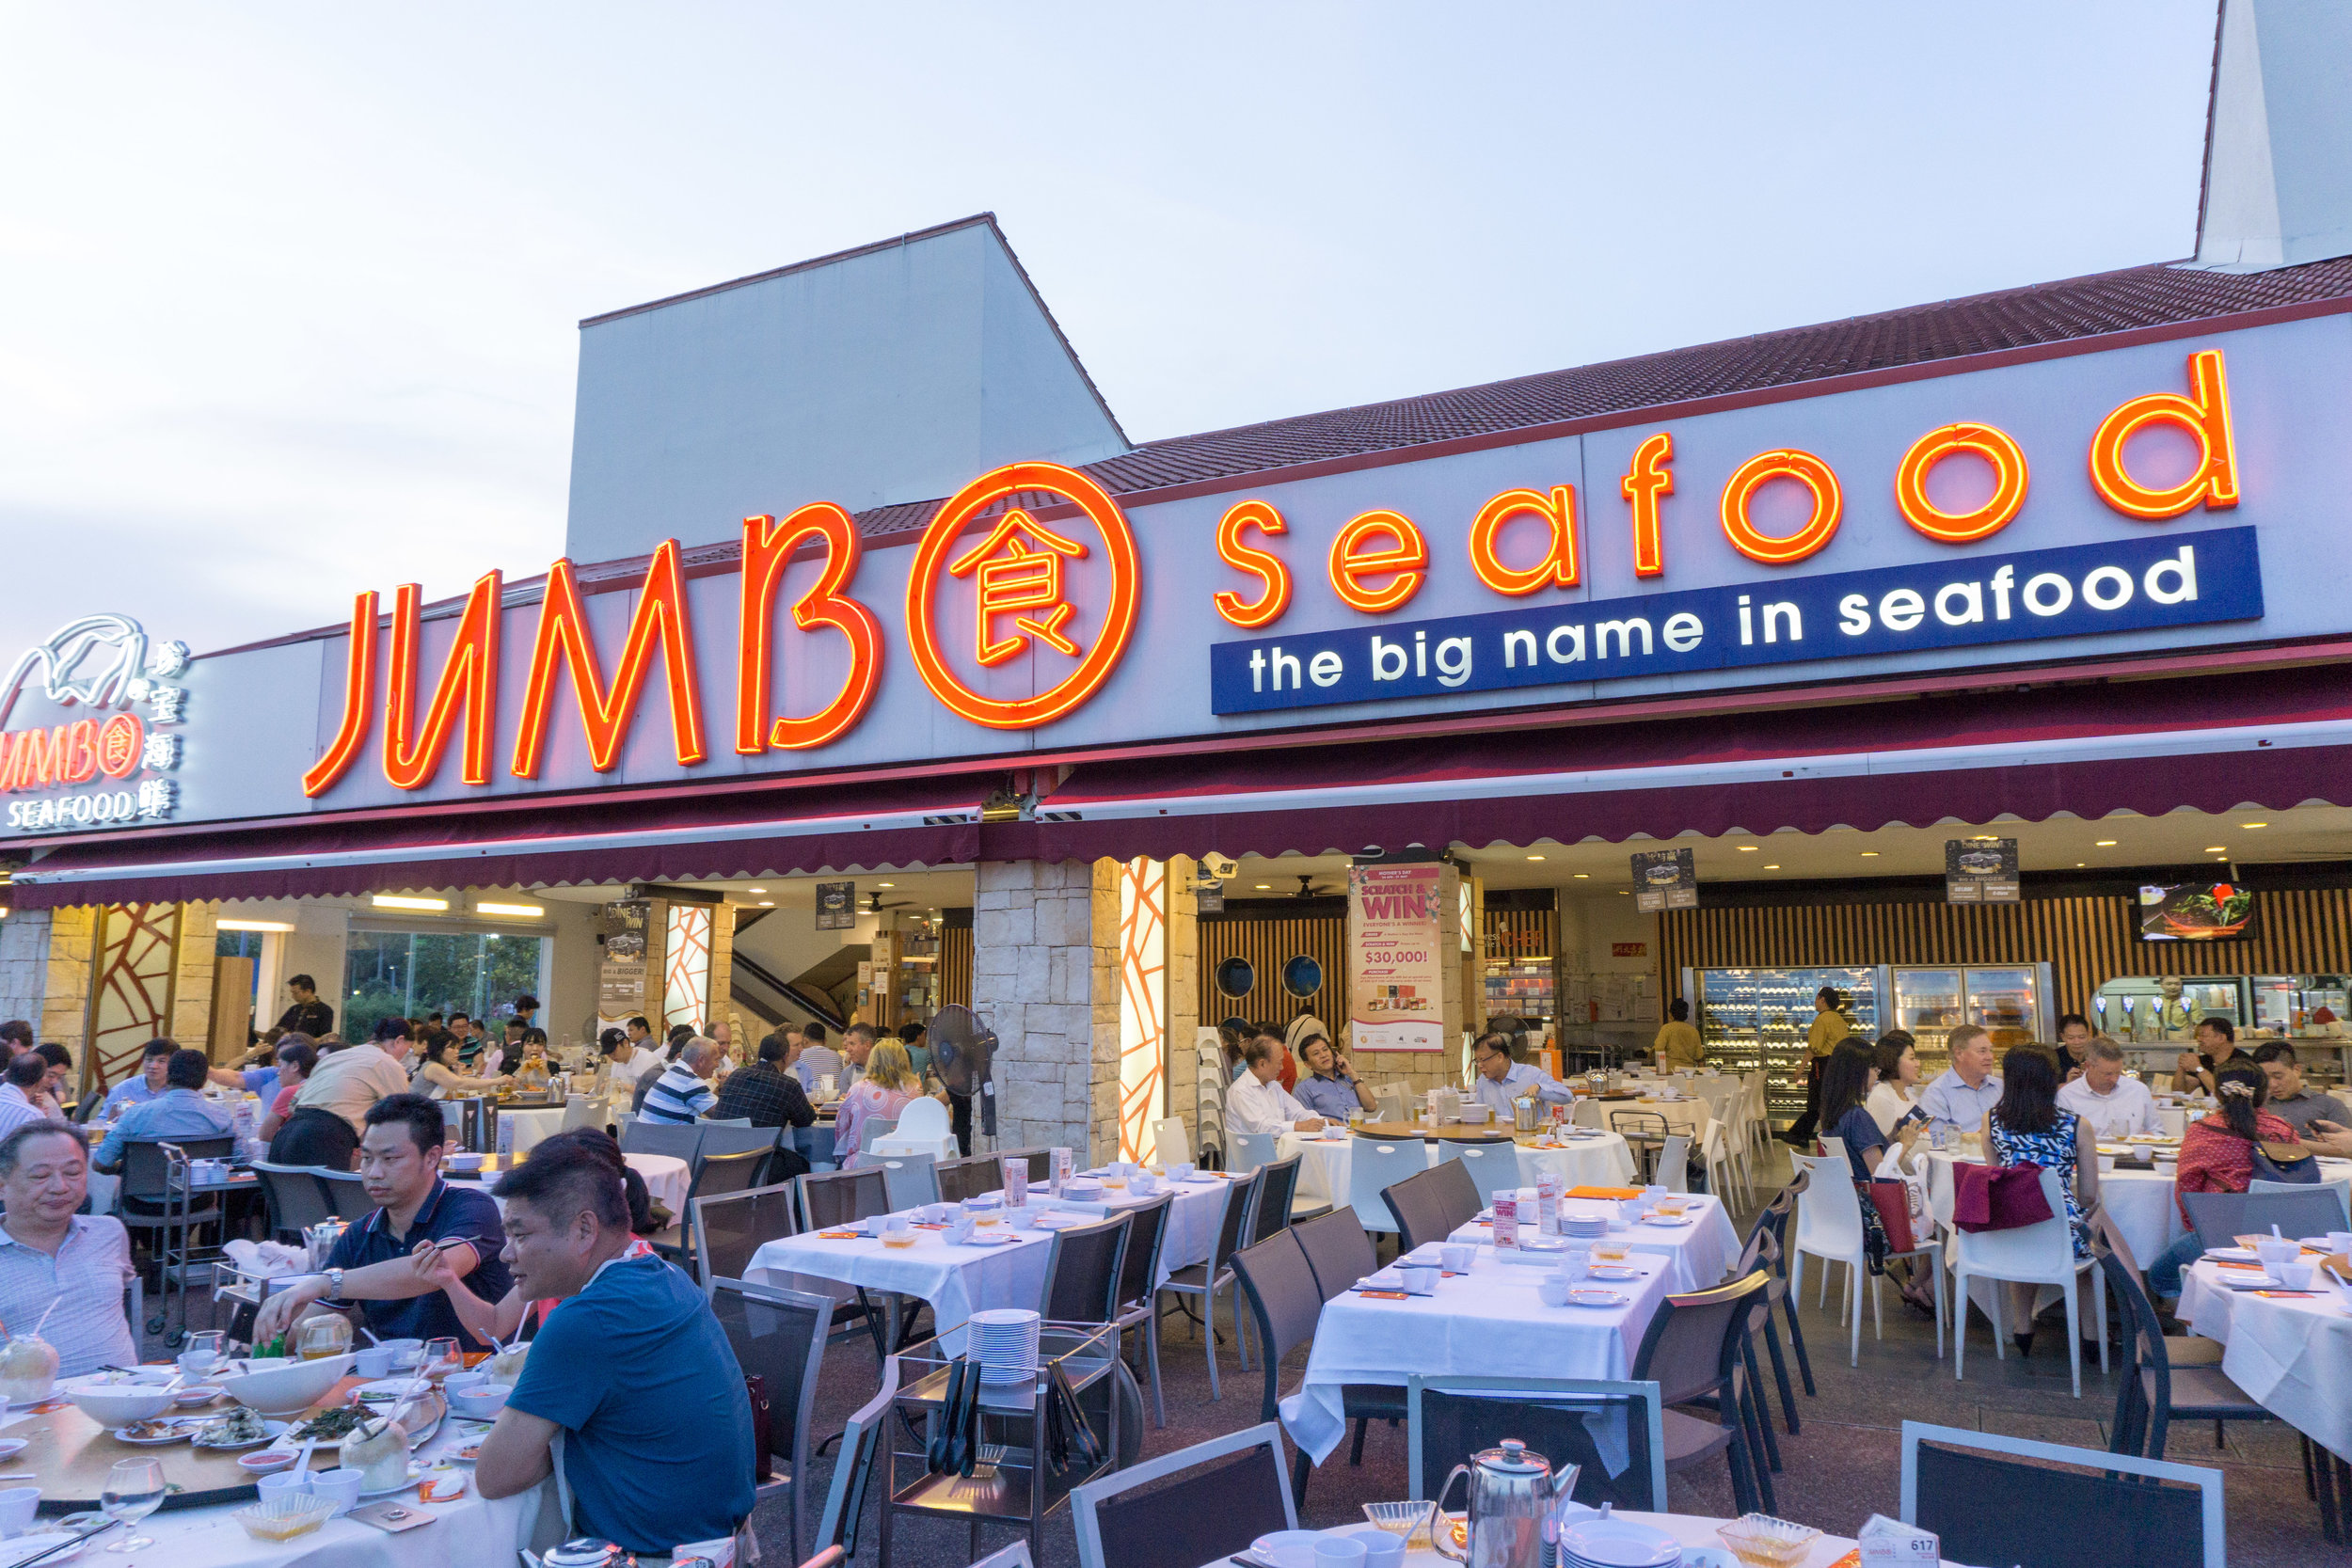 The local favorite - Jumbo Seafood